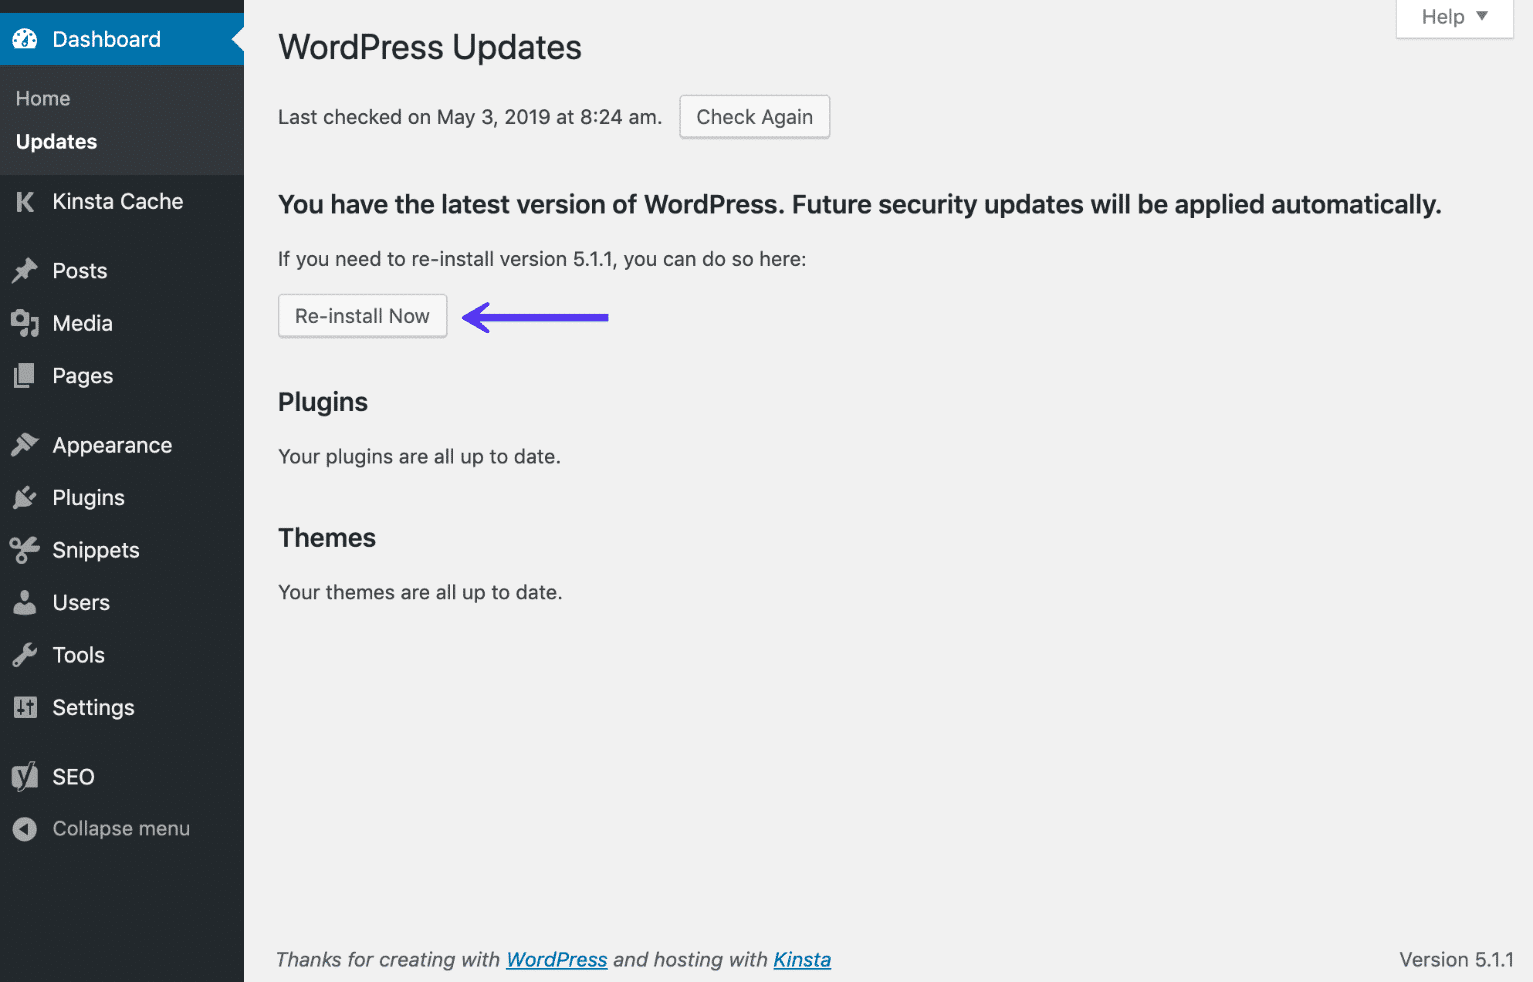 WordPress dashboard re-install now option